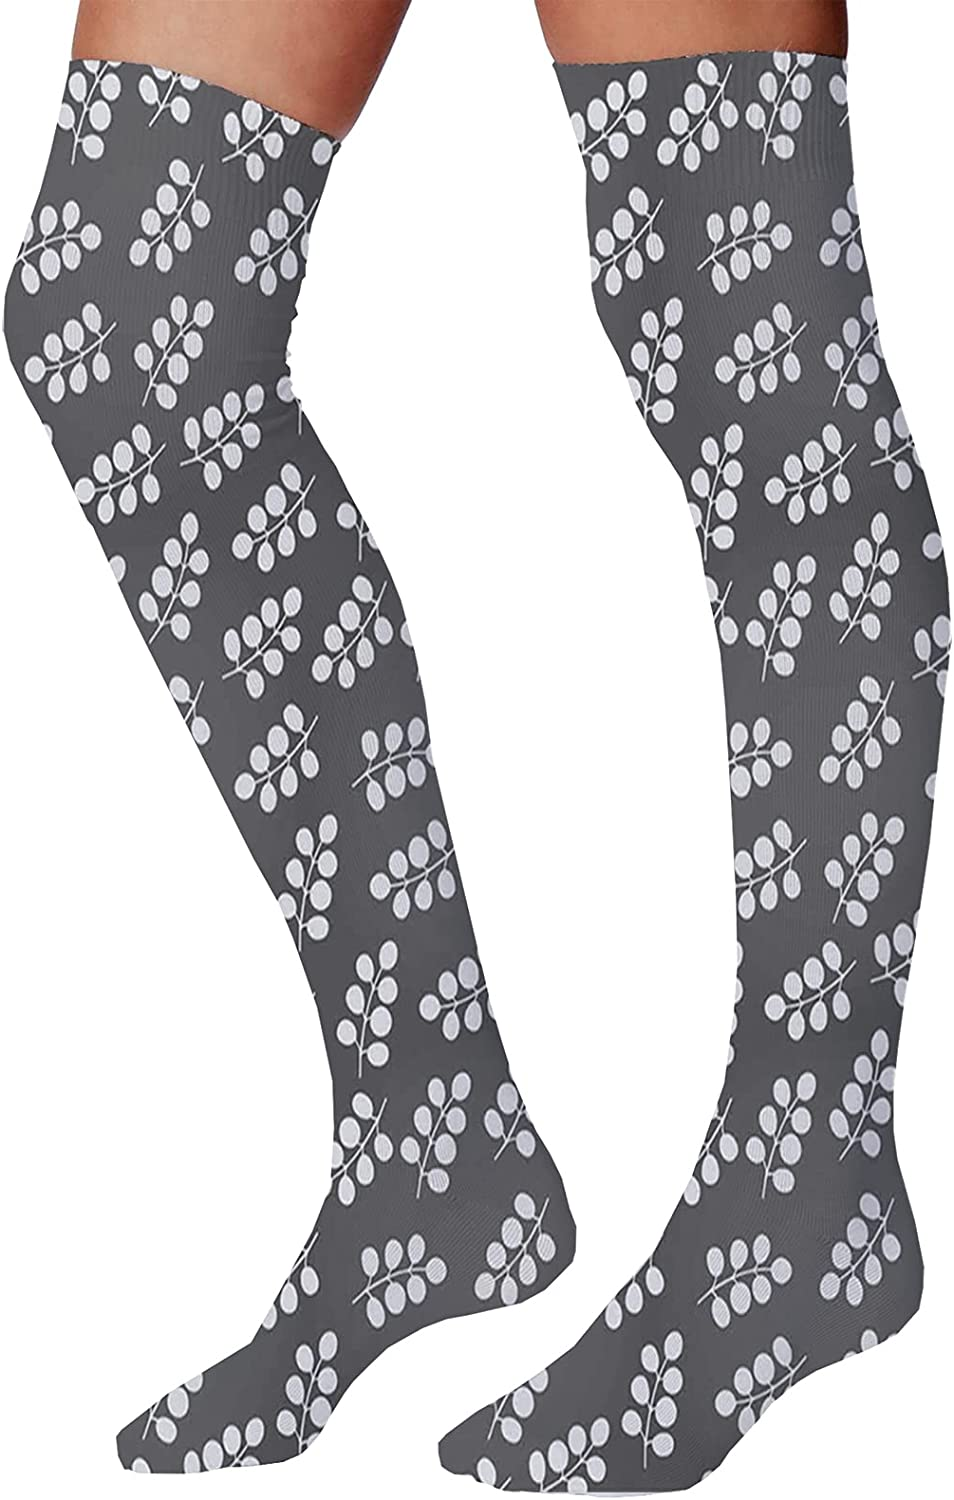 Men's and Women's Fun Socks,Abstract Leaf Like Shapes in Motley Lively Colors Entangled Funky Wavy Design